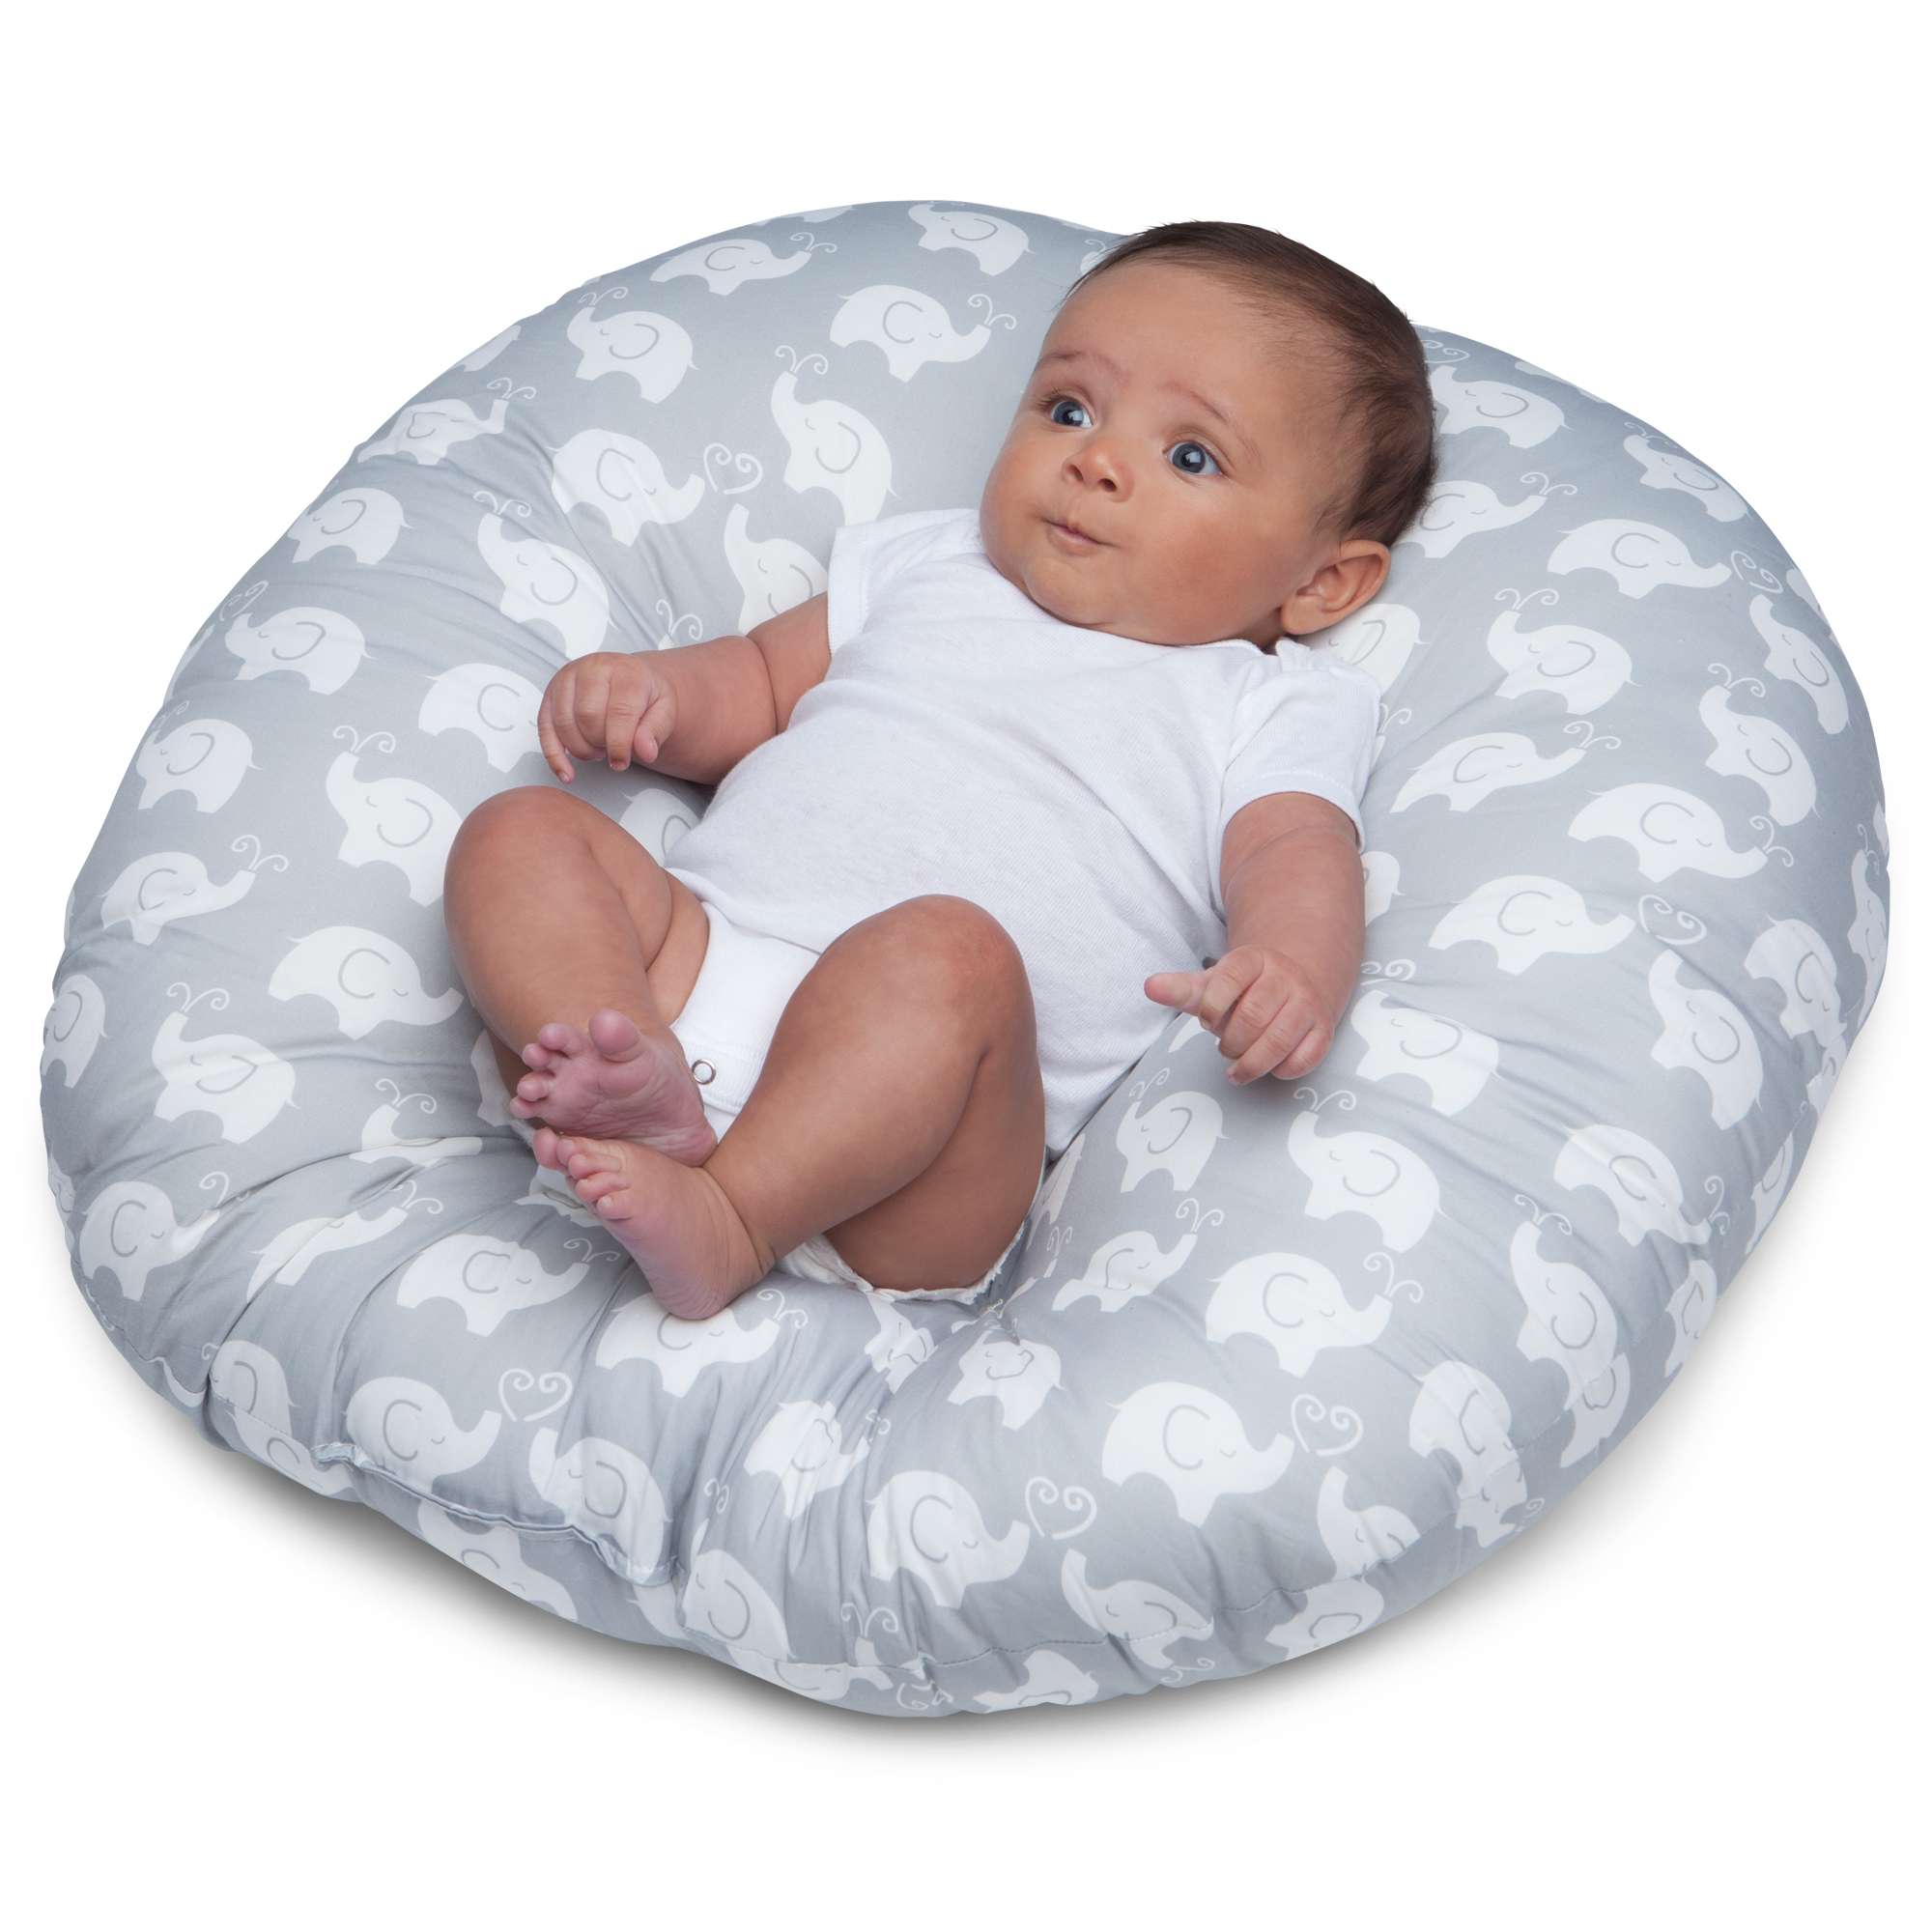 Boppy Newborn Pillow (Elephant Love Gray)